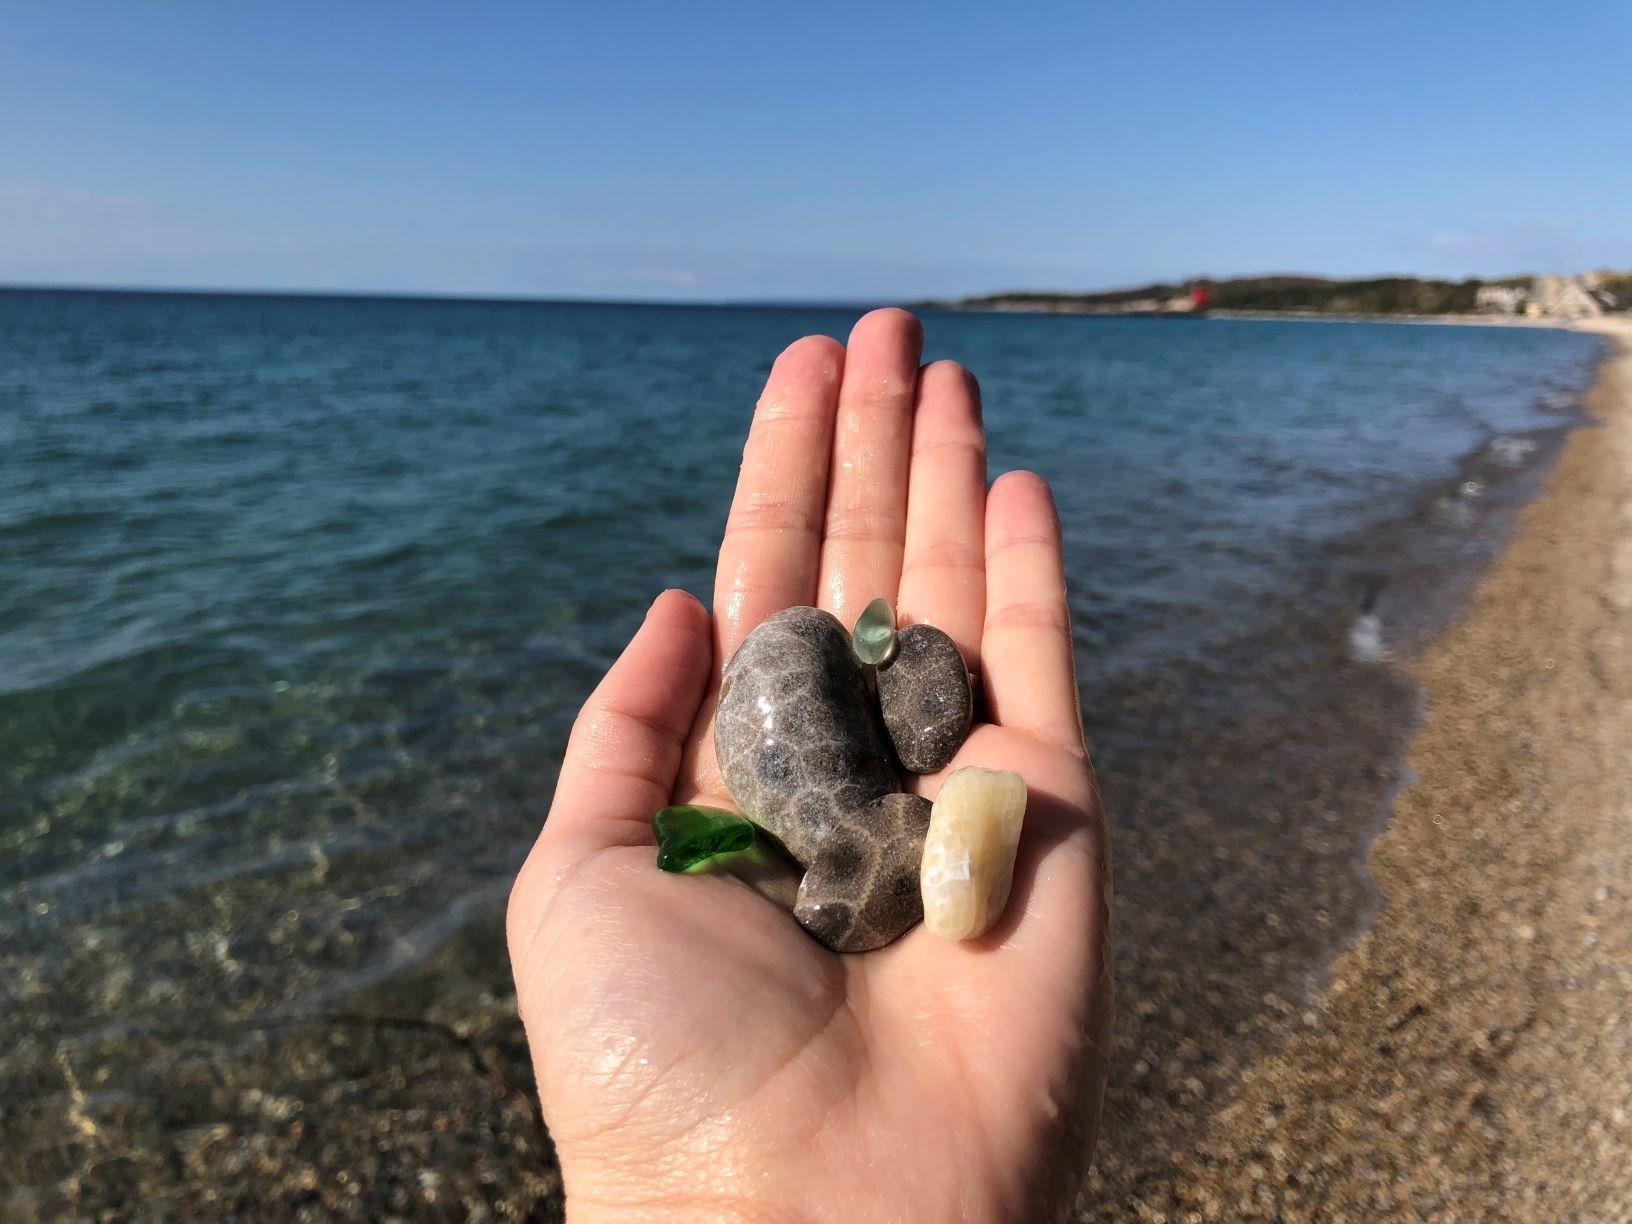 Petoskey stone hunting in Charlevoix